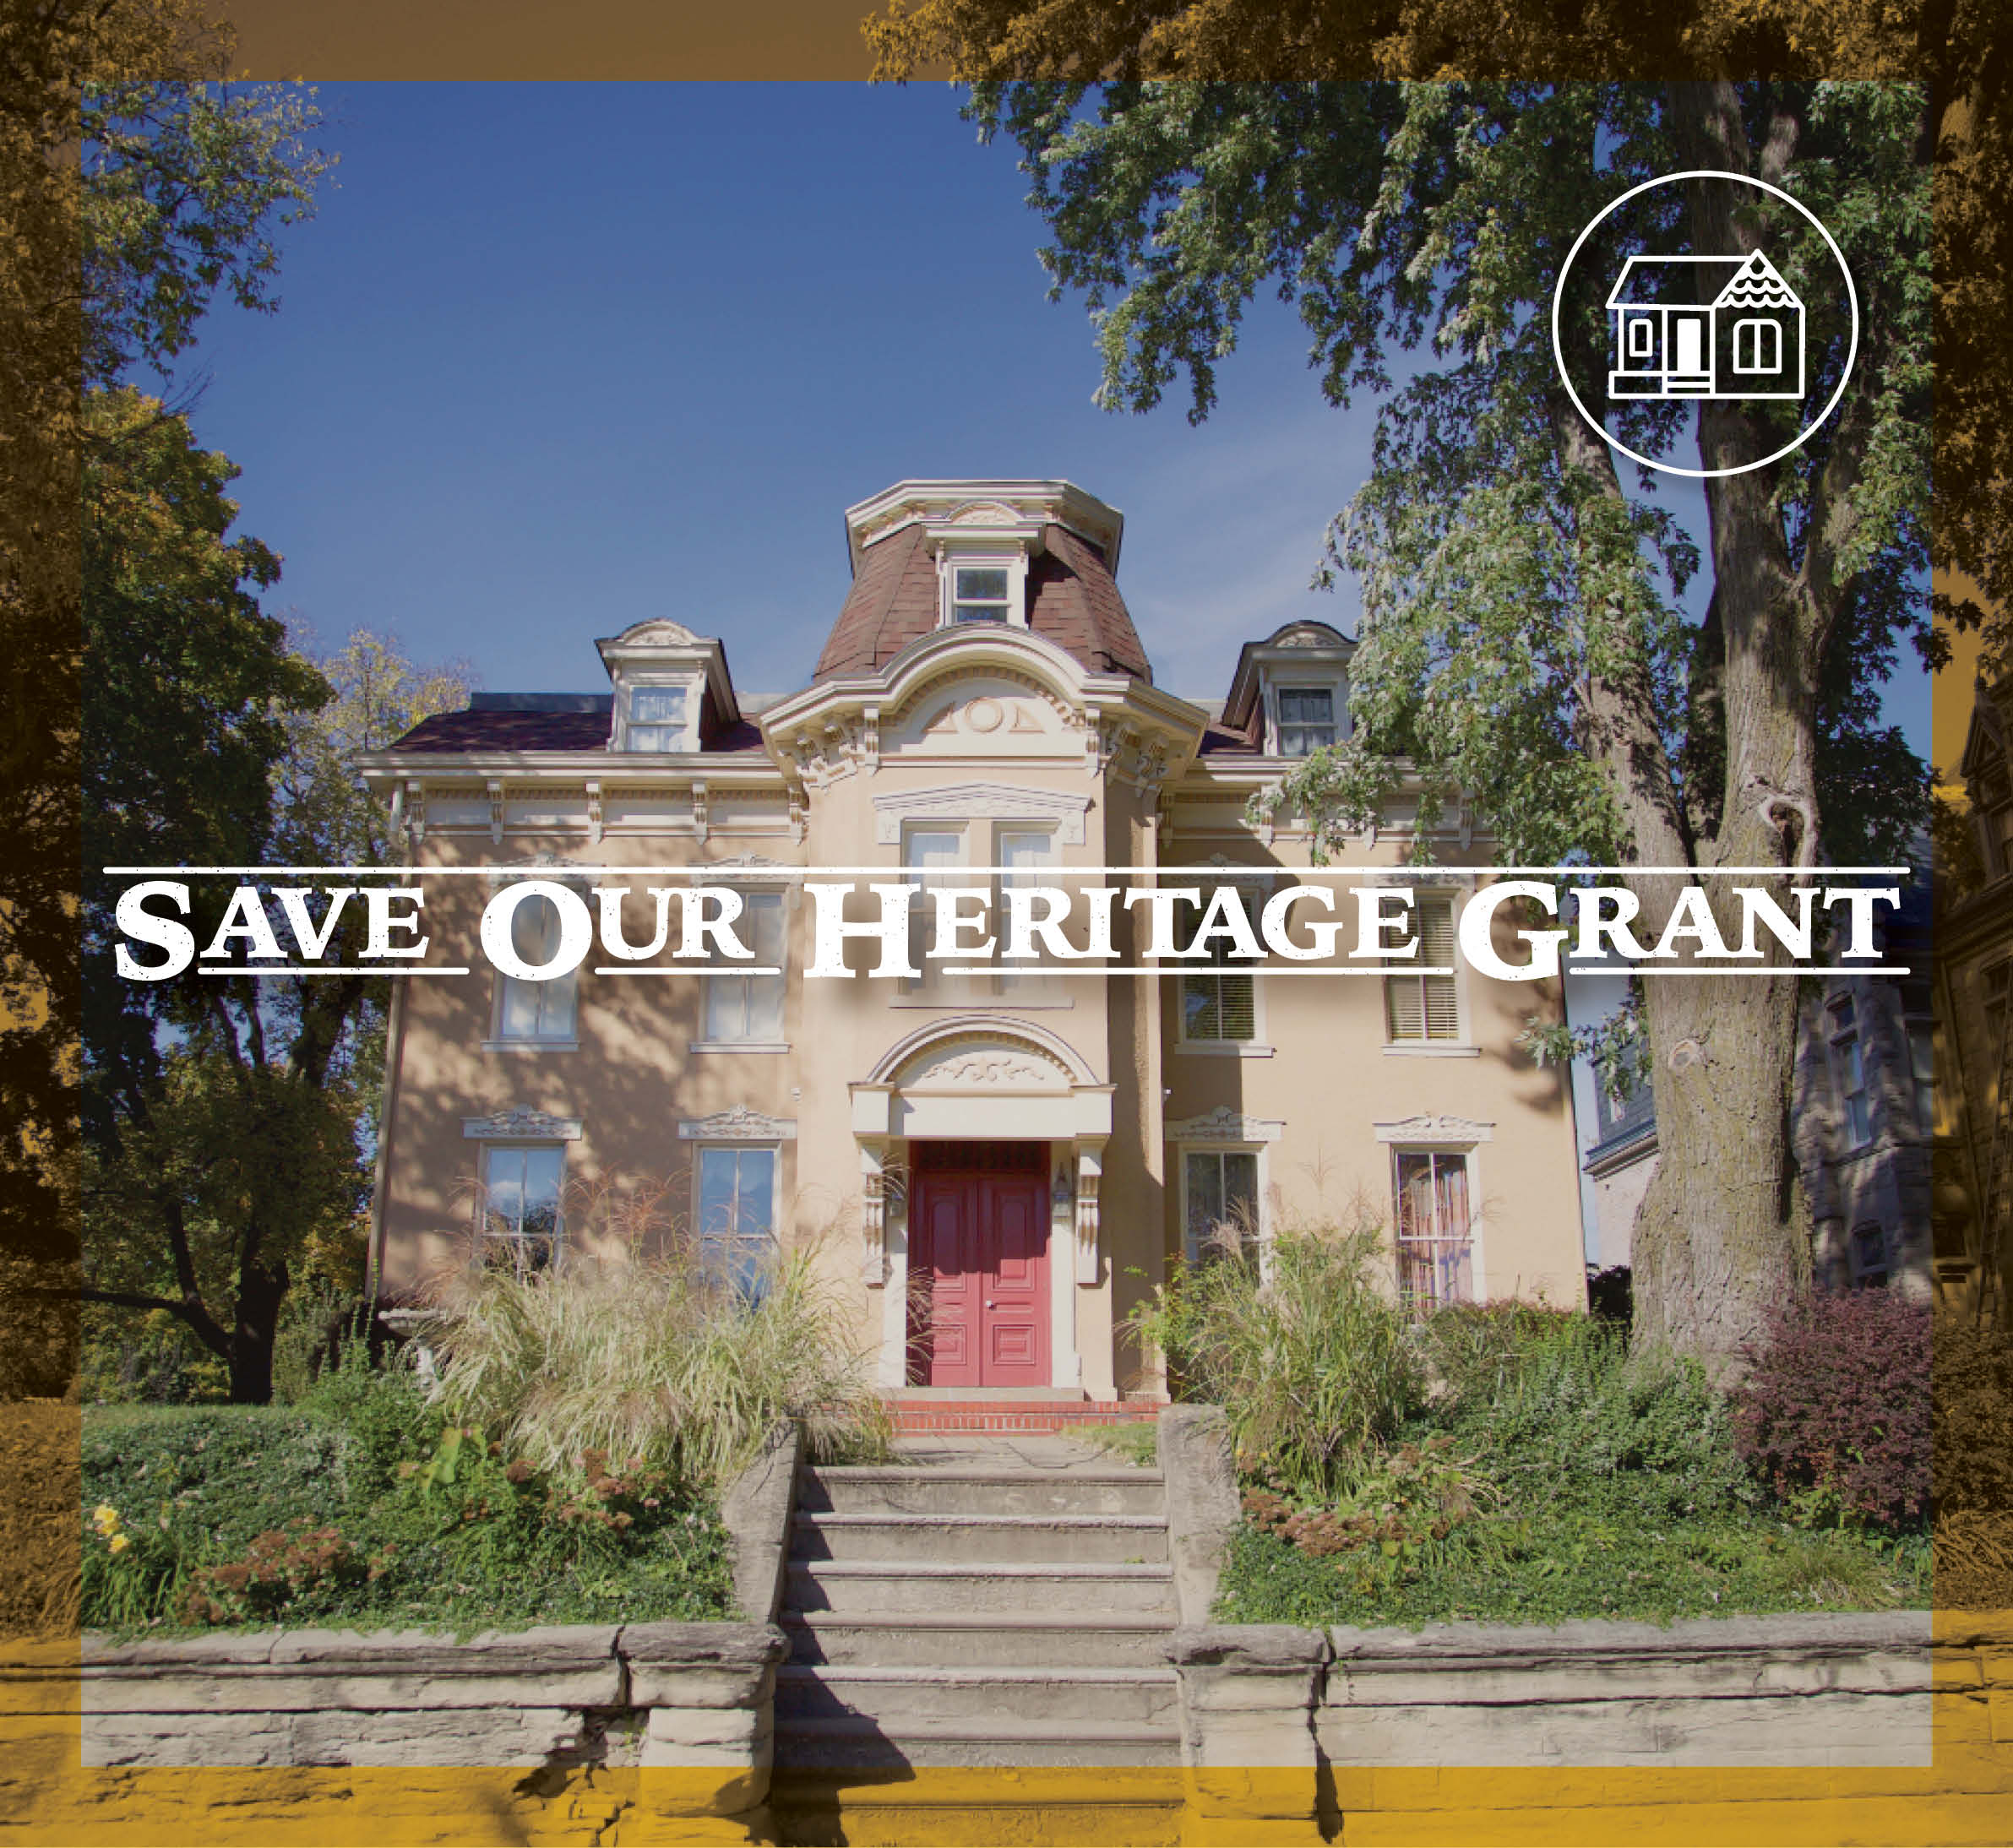 Save Our Heritage Grant